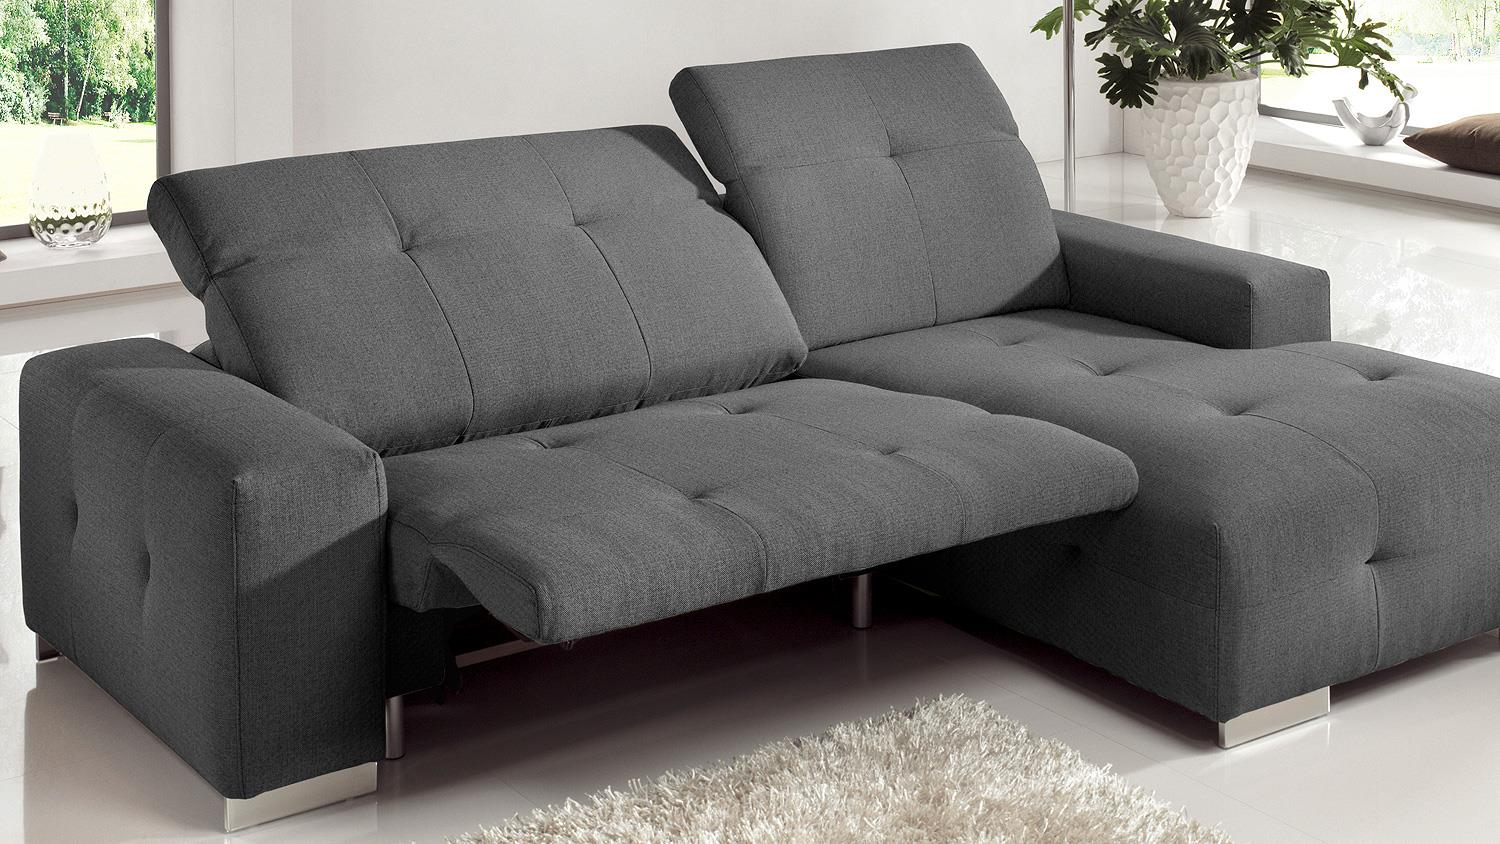 sofa mit relaxfunktion sofa elektrisch ausfahrbar sofa mit relaxfunktion elektrisch 95 with. Black Bedroom Furniture Sets. Home Design Ideas